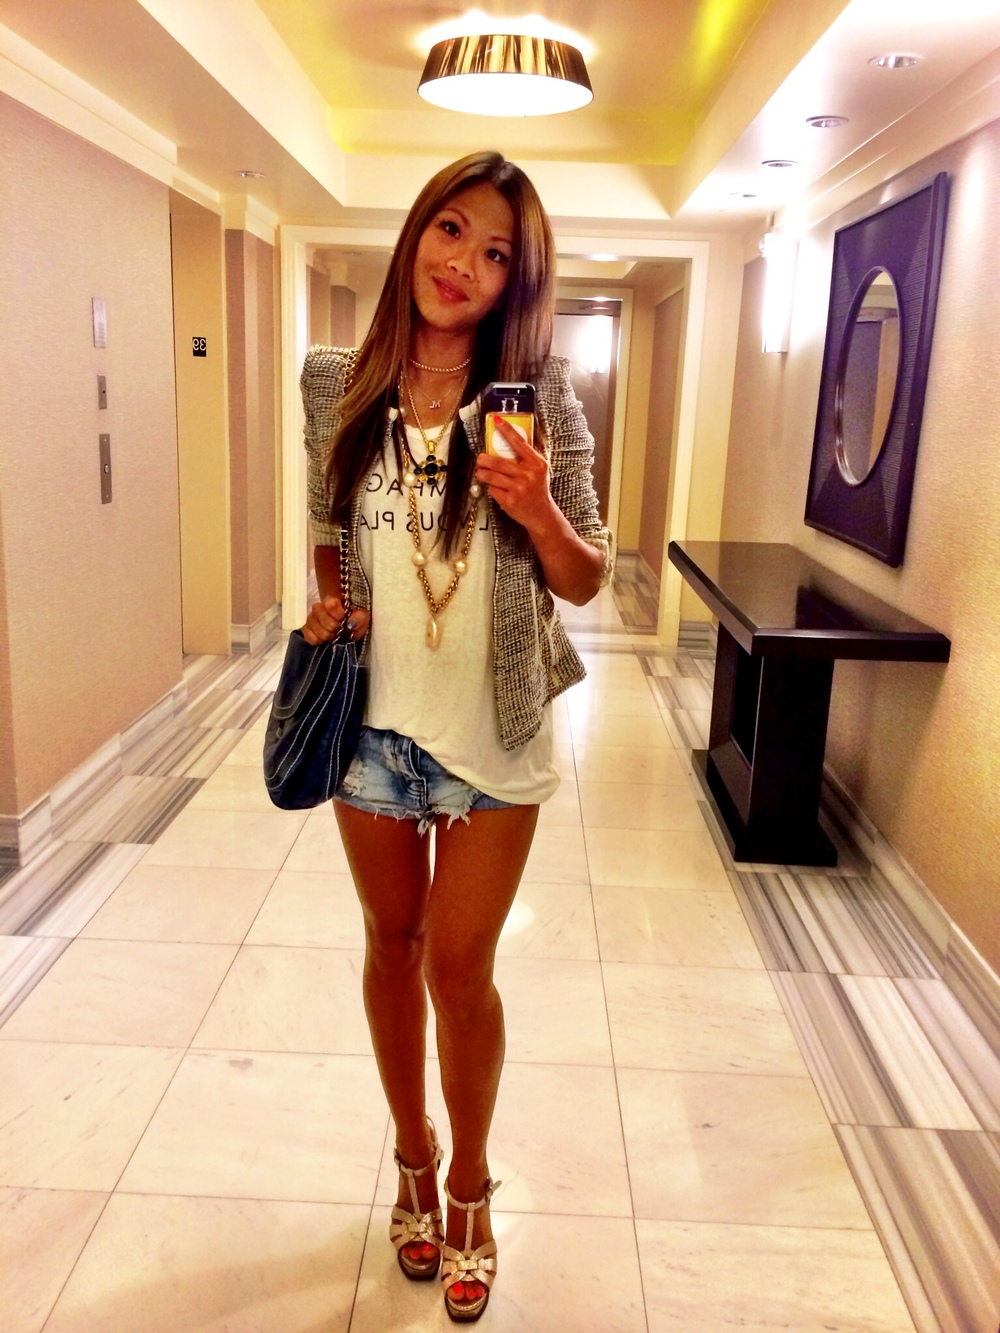 But first... A selfie! Off to dinner in my YSL Tributes, my One Teaspoon shorts, my CHAMPAGNE SIL VOUS PLAIT Daydreamer muscle tank, my Iro tweed jacket, vintage Chanel bling bling for ling ling, and my beat up Prada bag. Definitely dressed to inhale this evening!